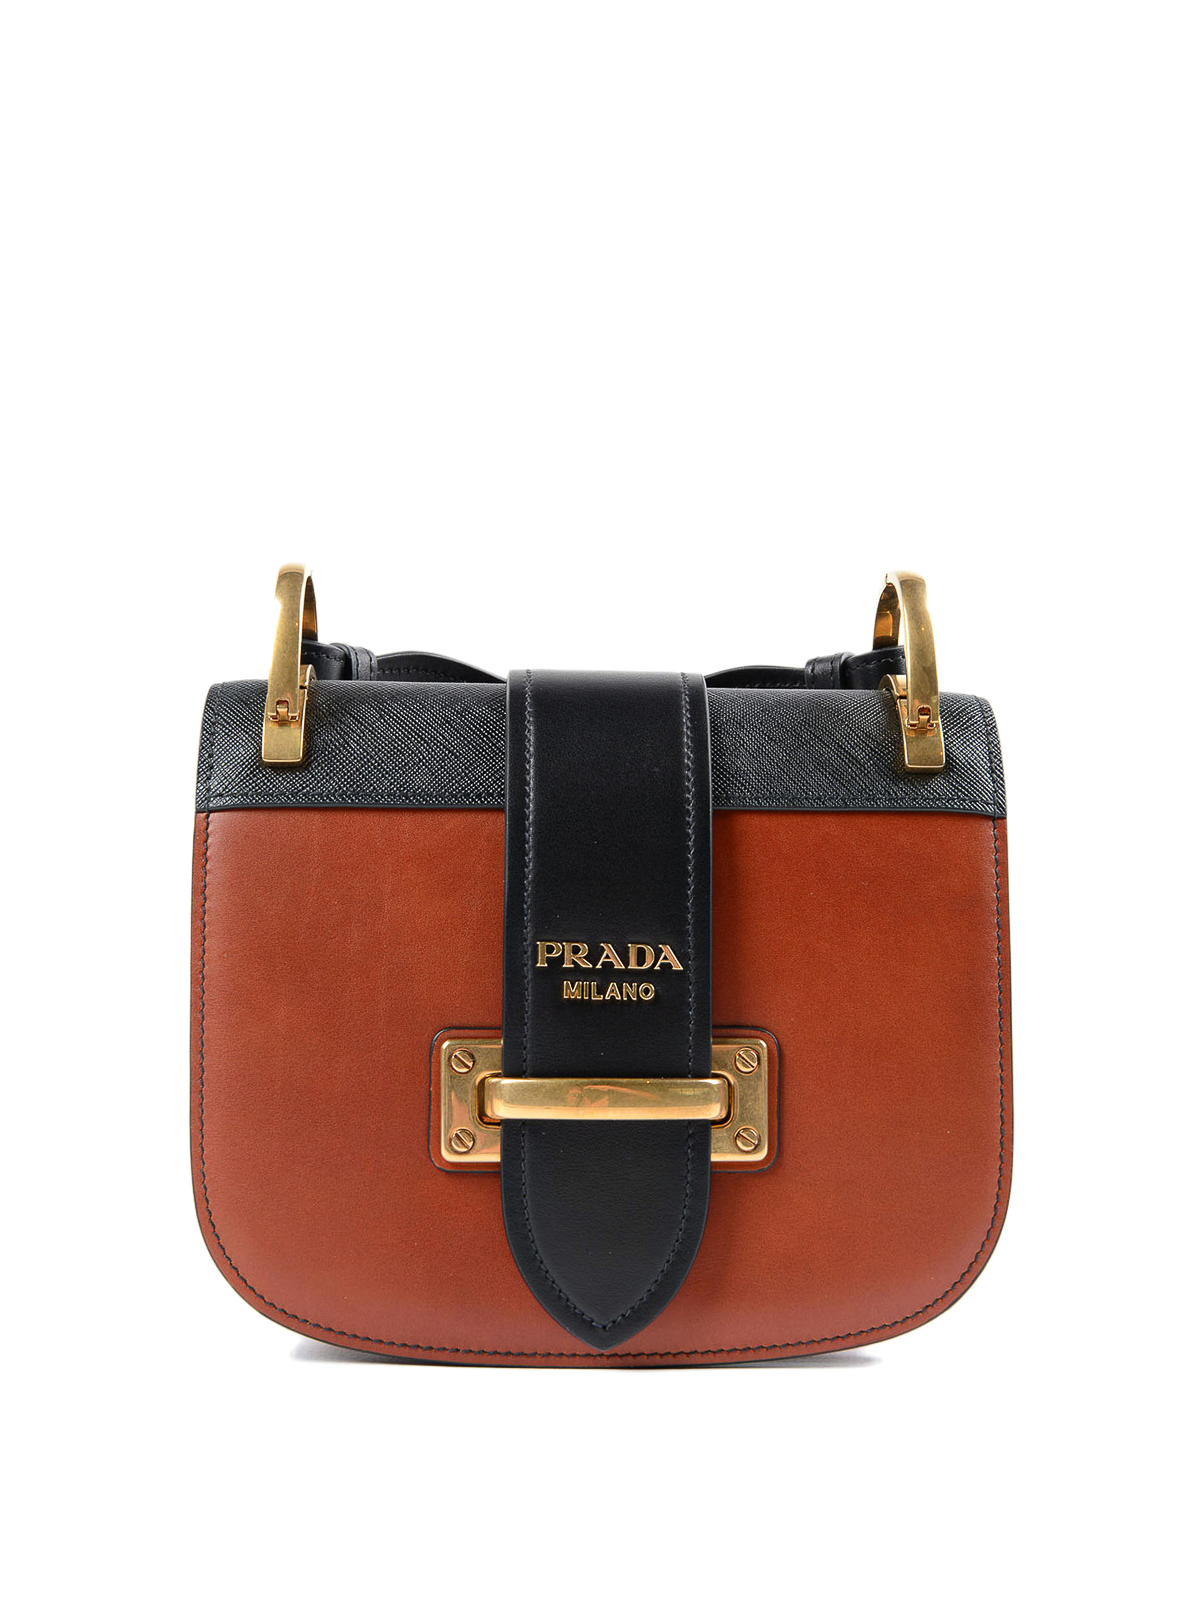 7b4d3e3664 Prada - Cahier two-tone crossbody bag - cross body bags ...